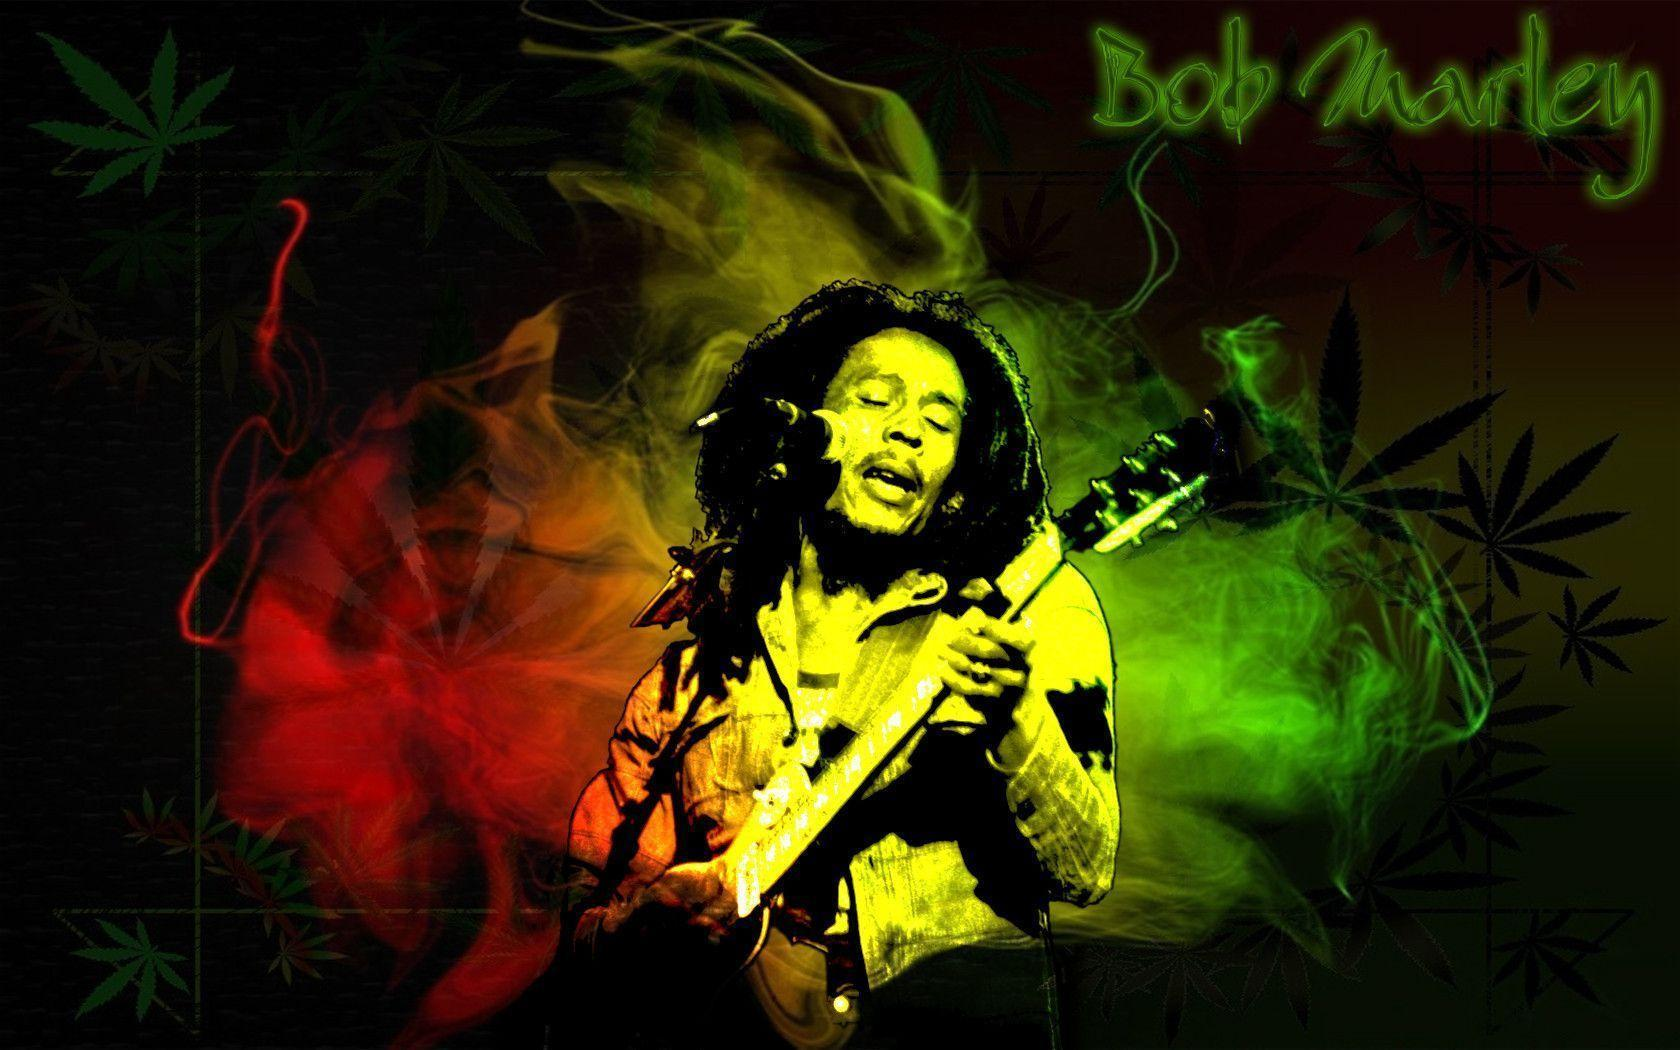 Bob Marley Smoking Weed Wallpaper Hd Picture Image Photo 44628